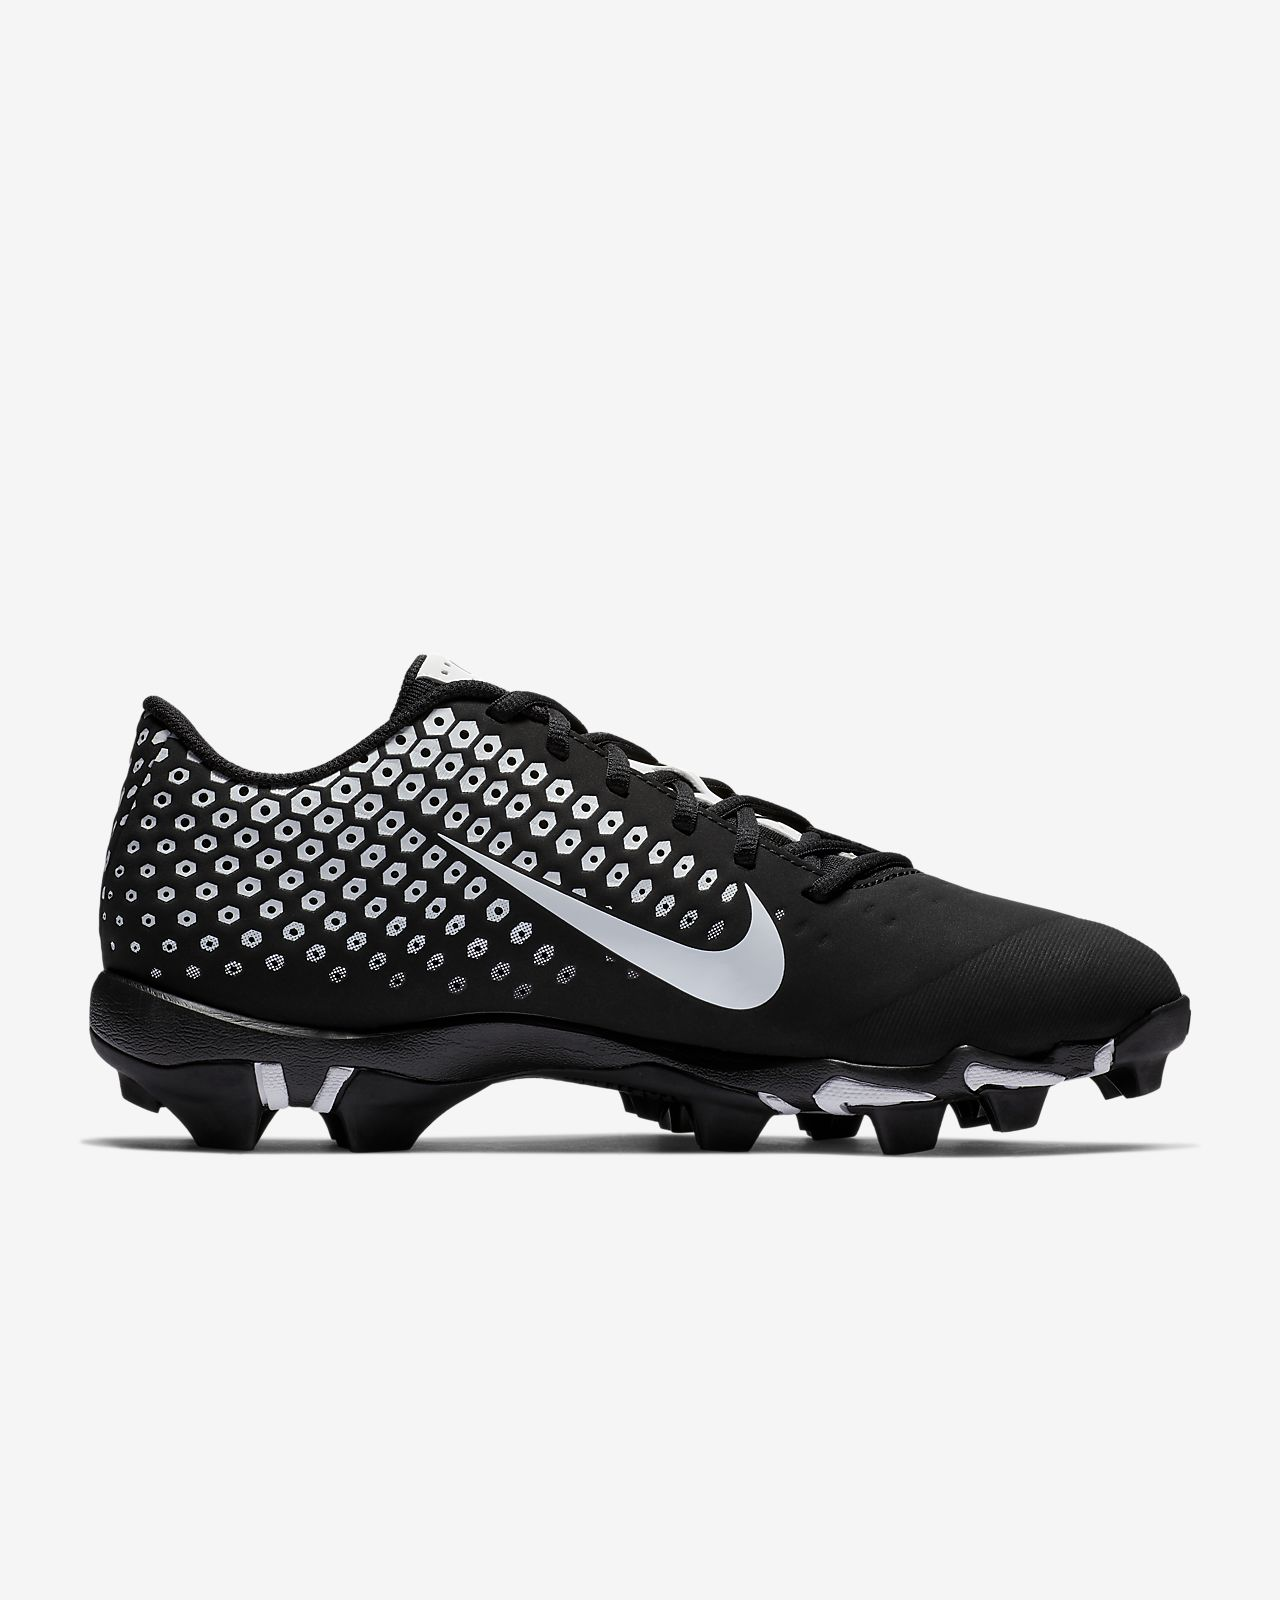 863545be4 Nike Vapor Ultrafly 2 Keystone Men s Baseball Cleat. Nike.com